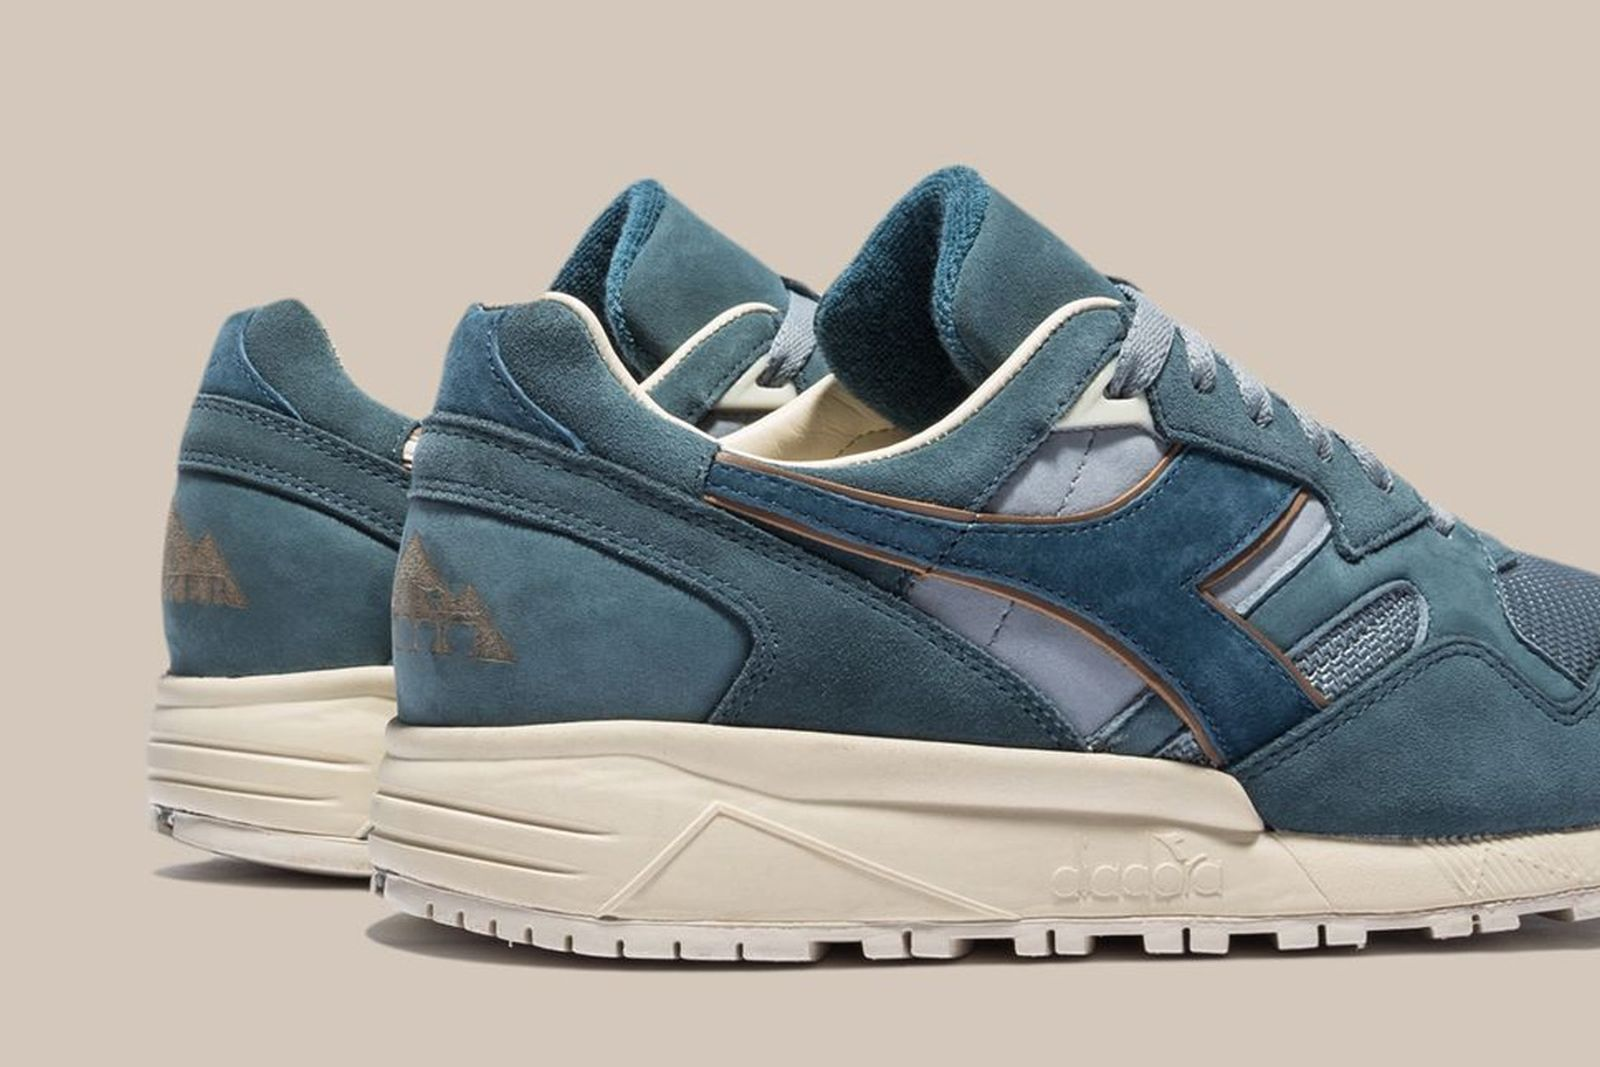 packer-diadora-n9002-molveno-release-date-price-product-01